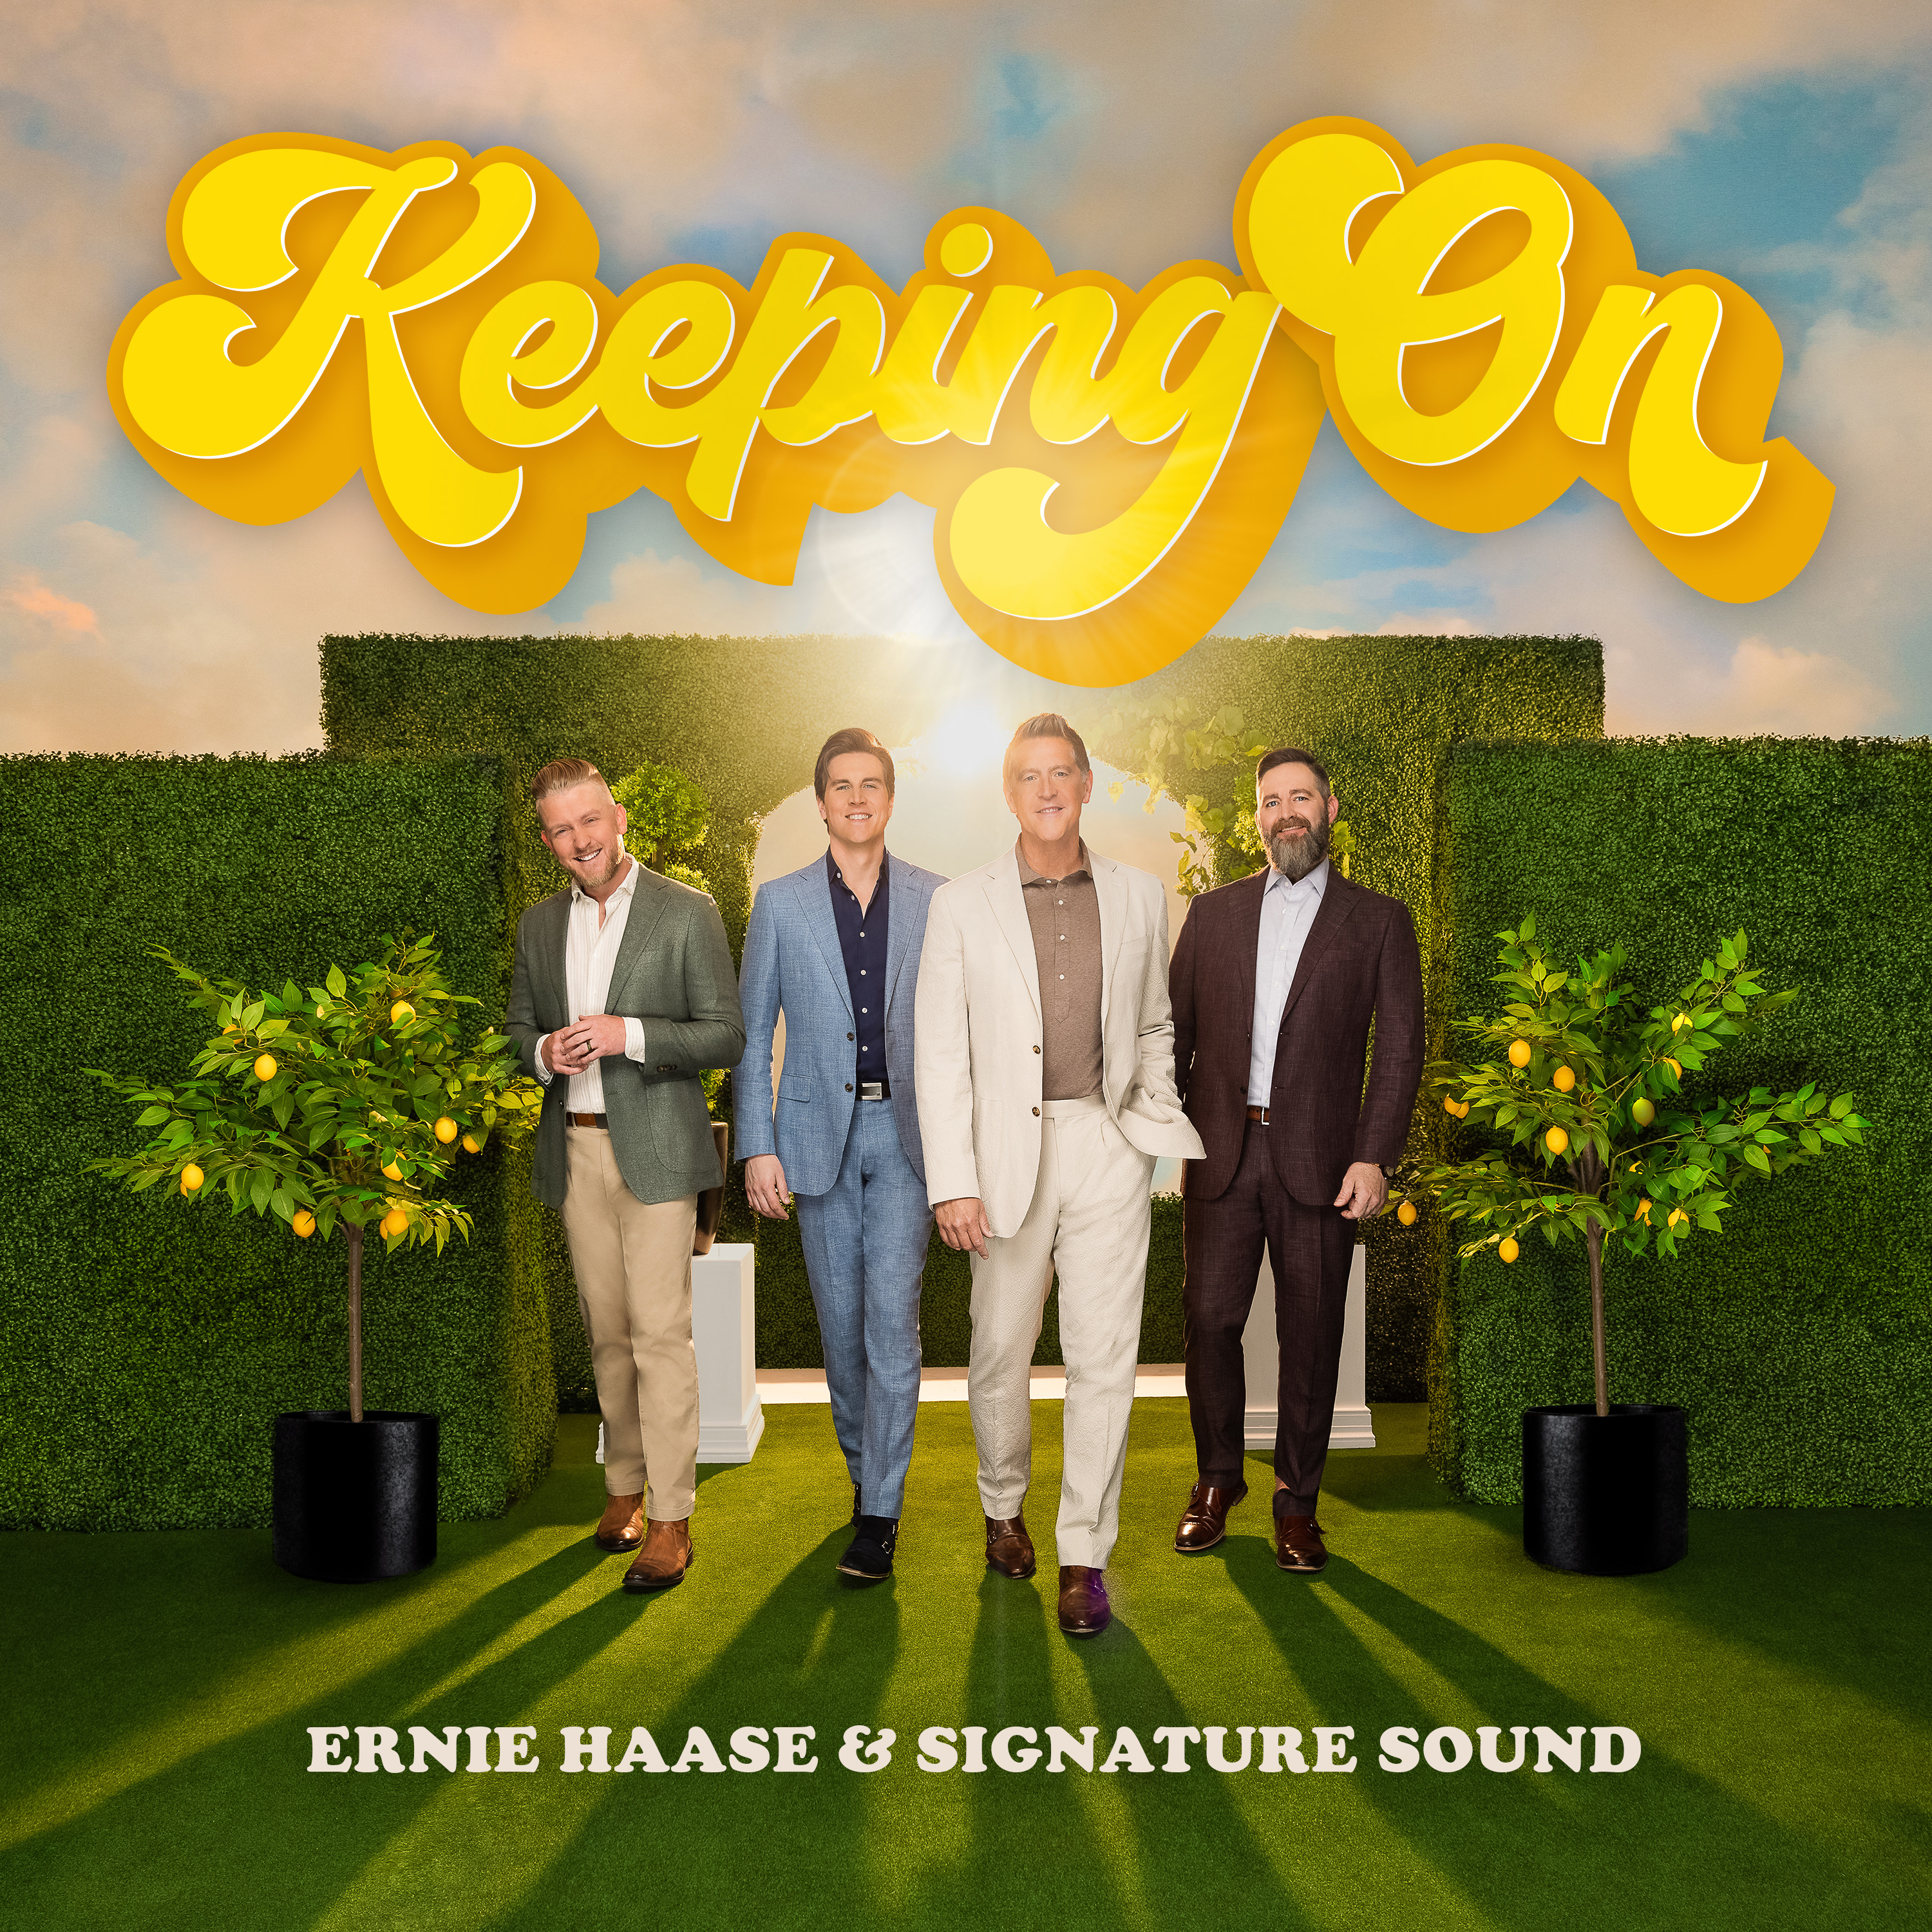 Art for Keep On Keeping On by Ernie Haase & Signature Sound